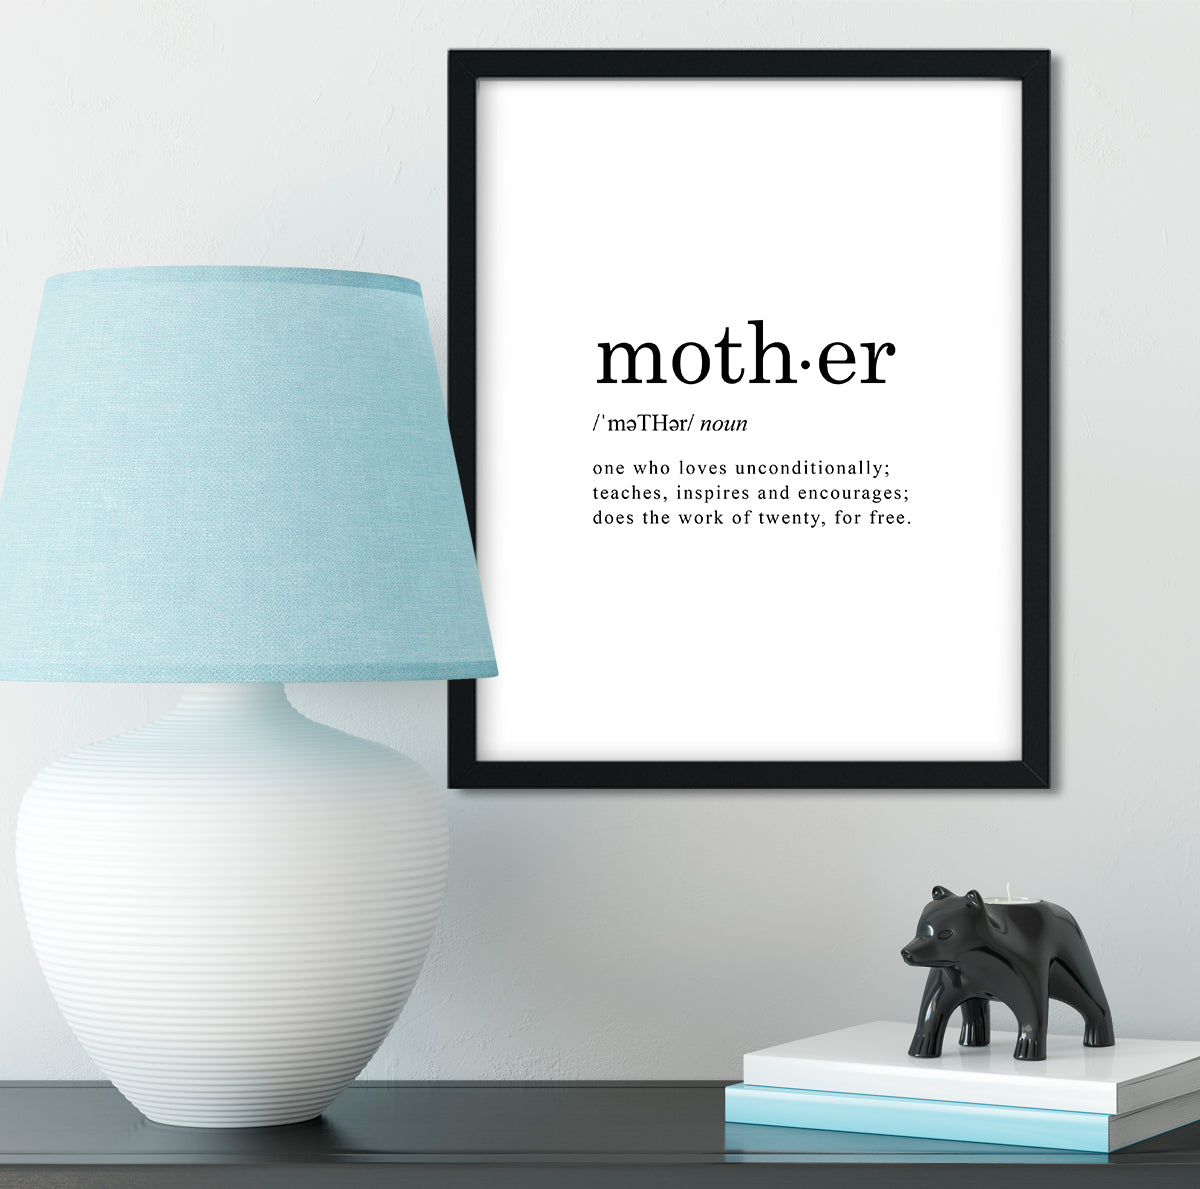 Mother Word Definition Wall Decor Art - 8x10 unframed print - dictionary meaning print makes a great gift